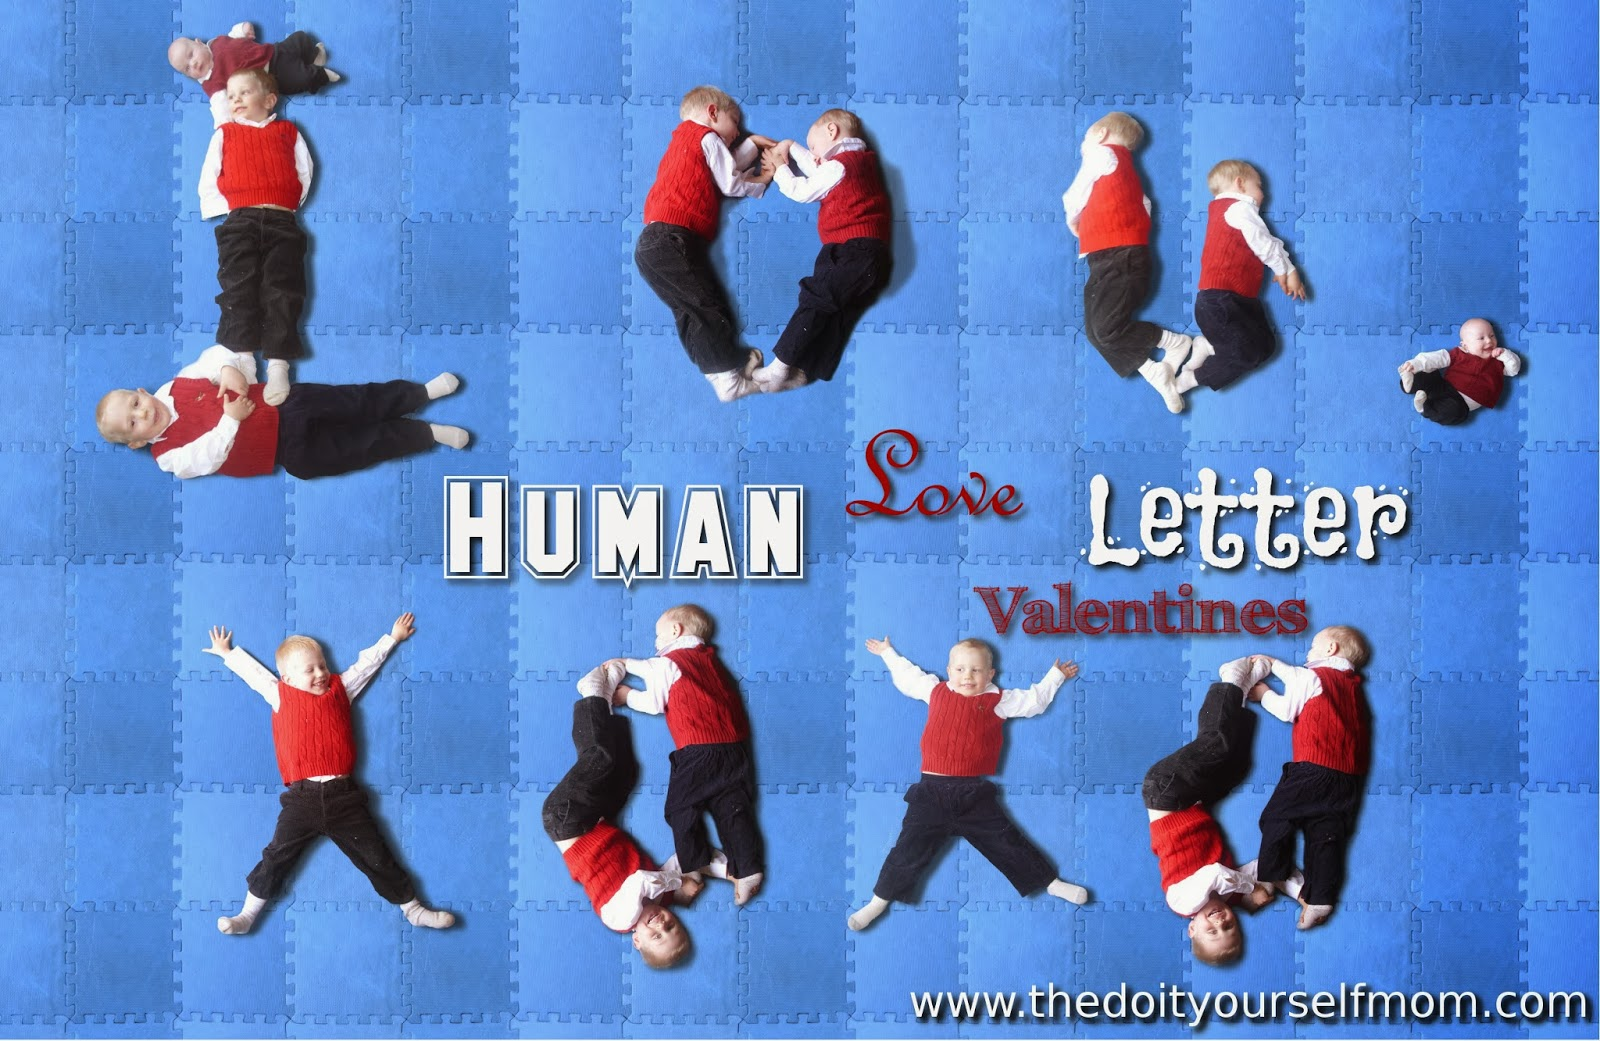 The Do-It-Yourself Mom: DIY Human Love Letter Valentines